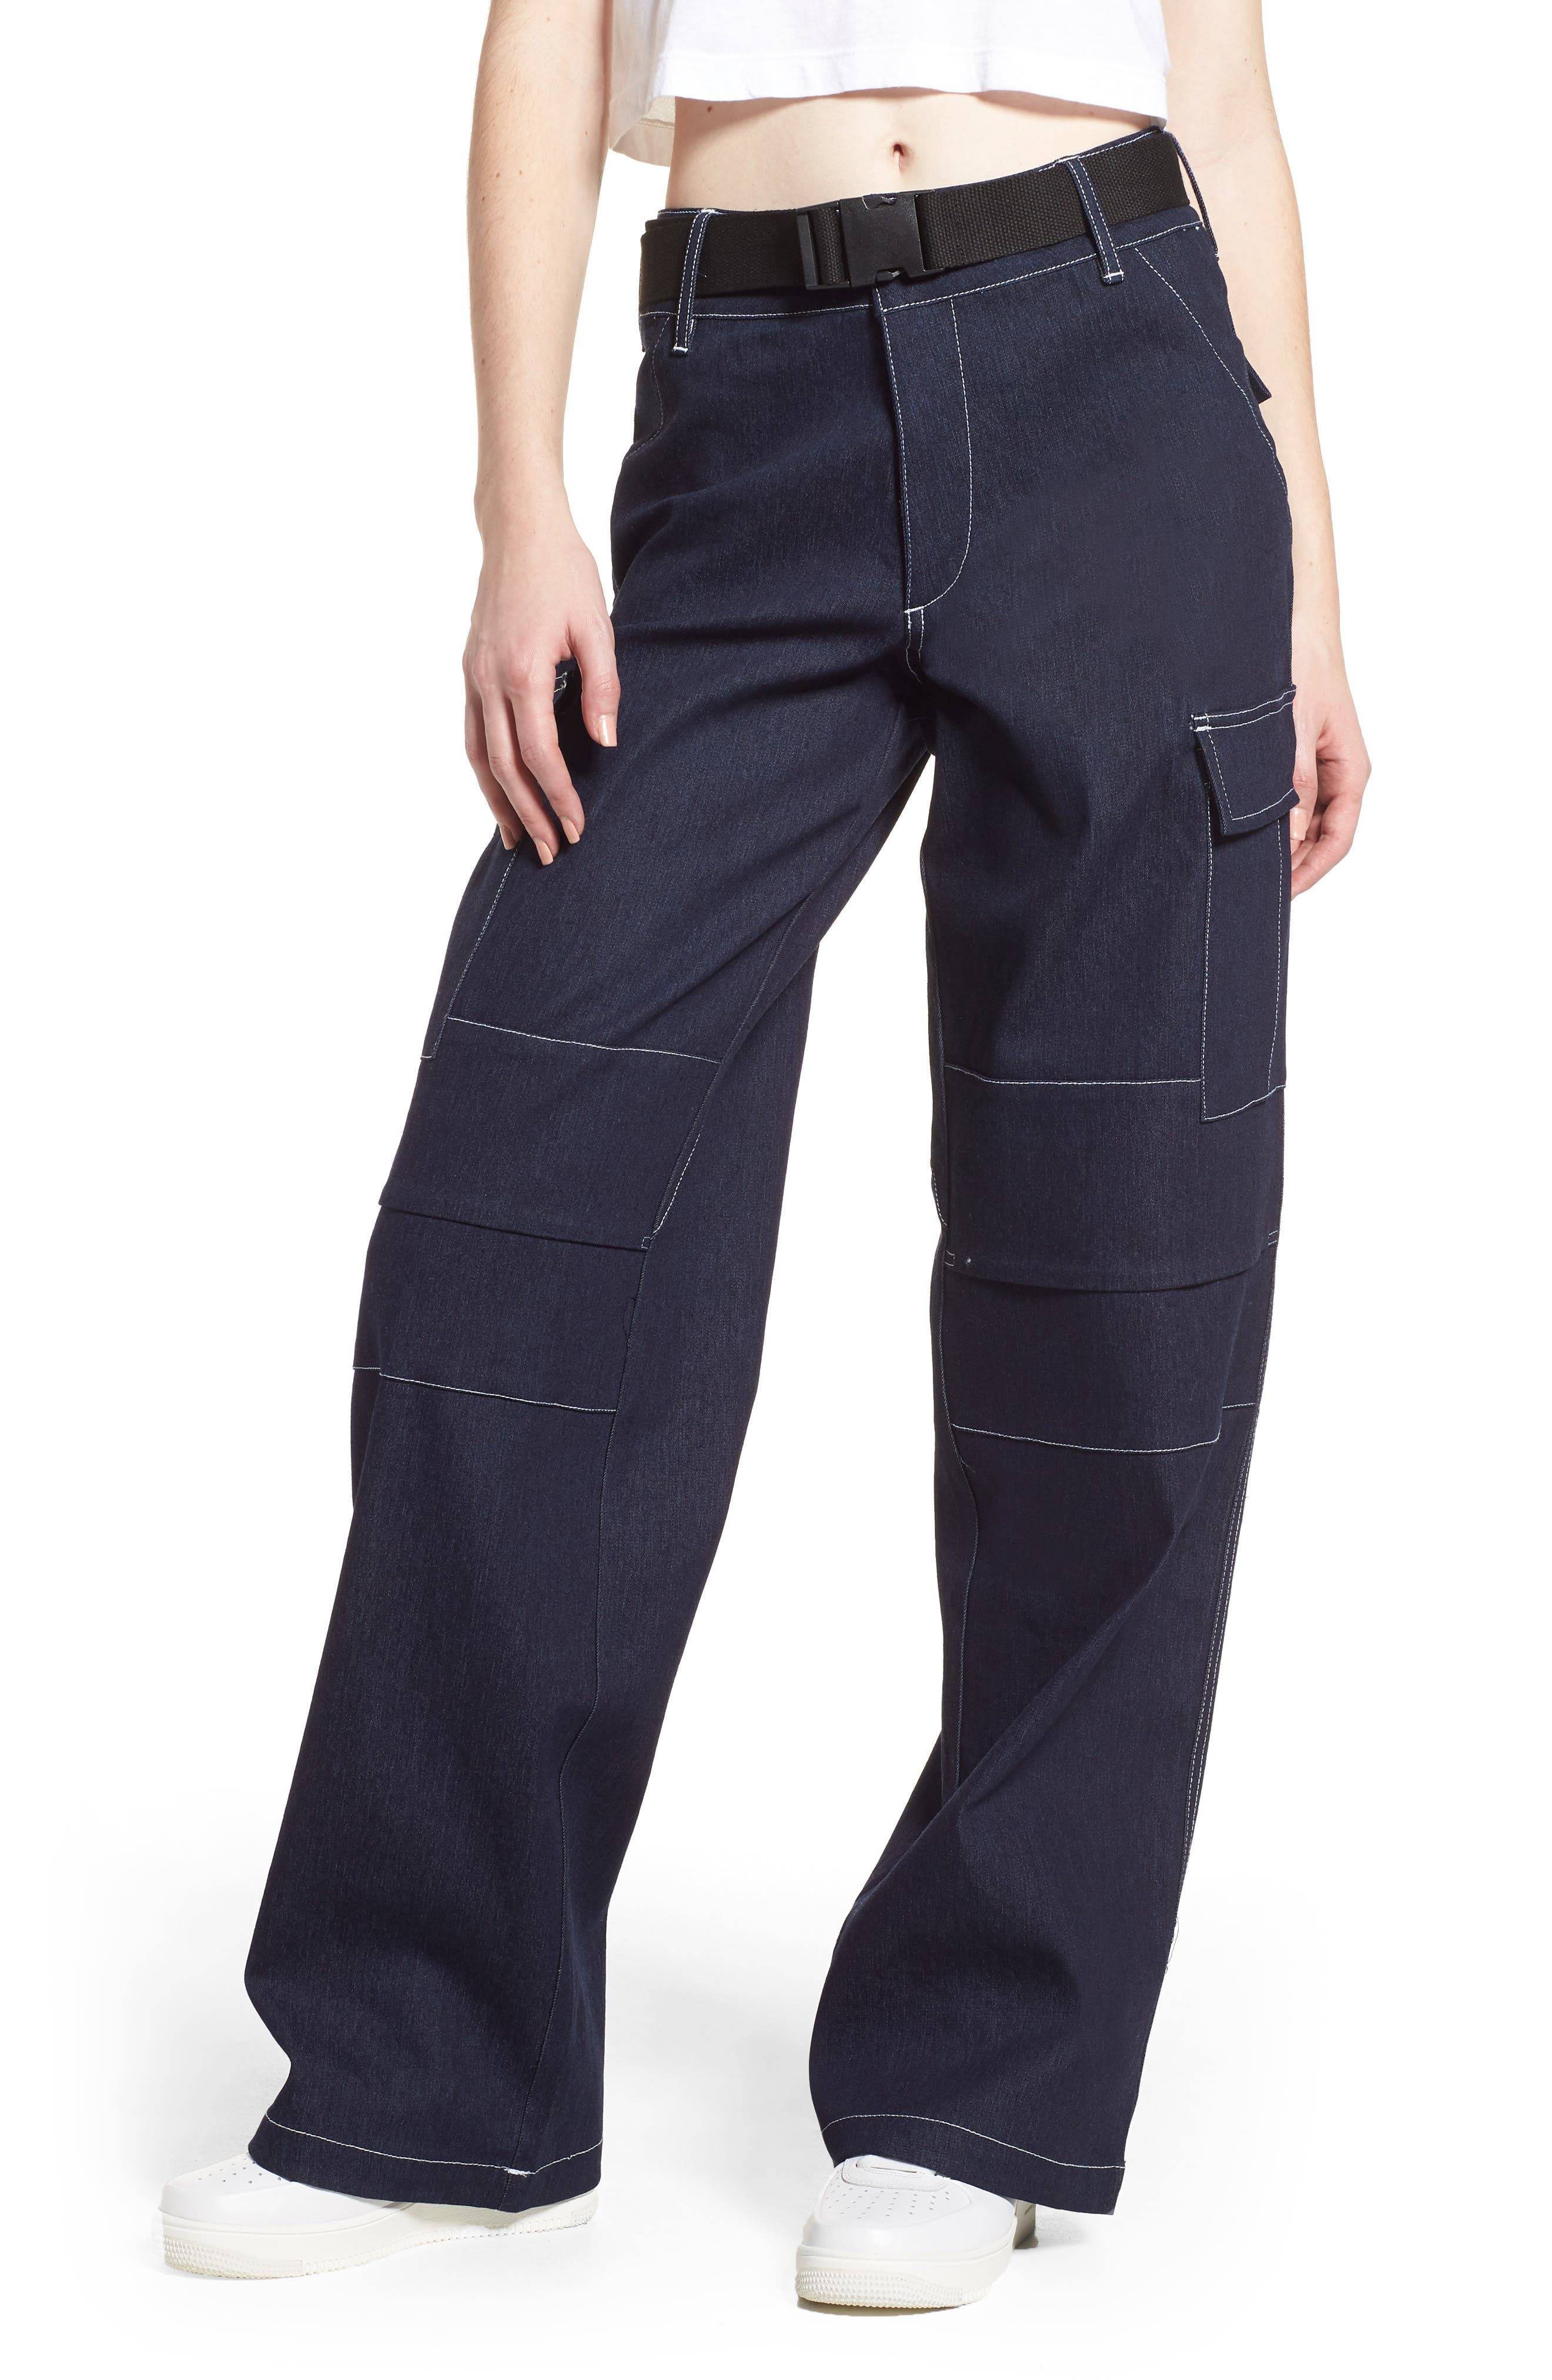 I.AM.GIA Ace Cargo Jeans